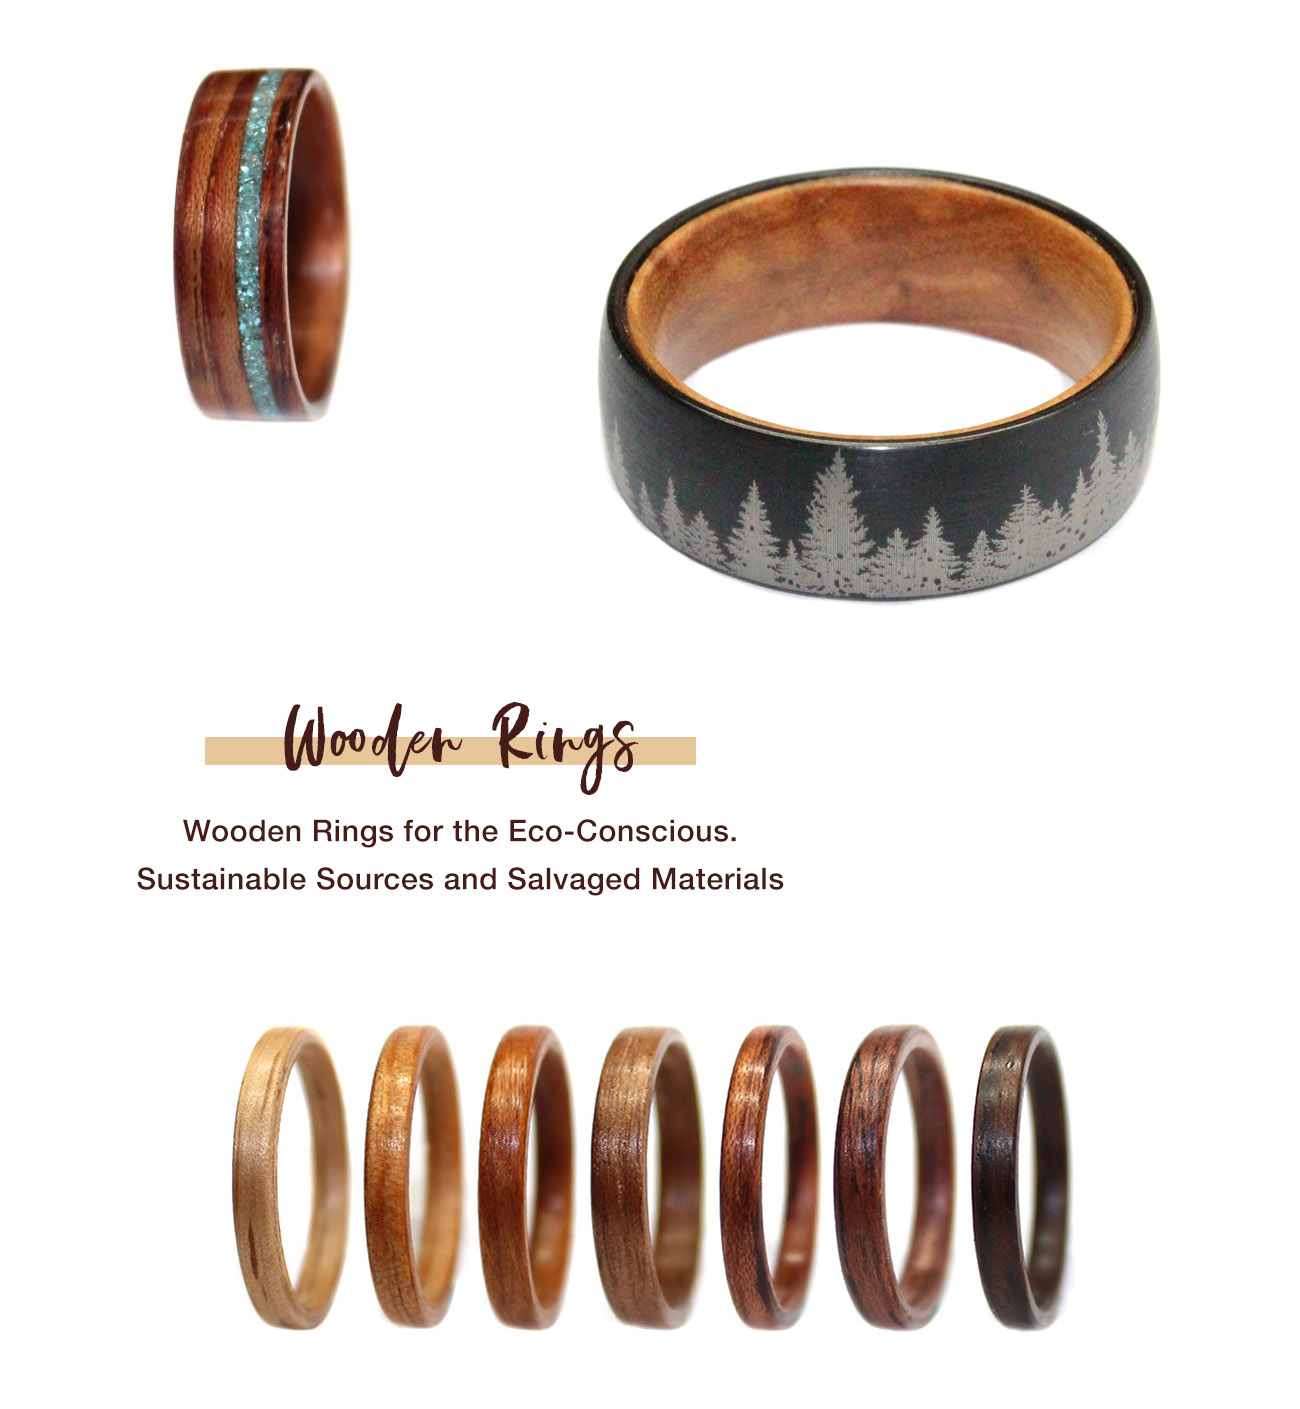 Wooden Rings for your Wedding